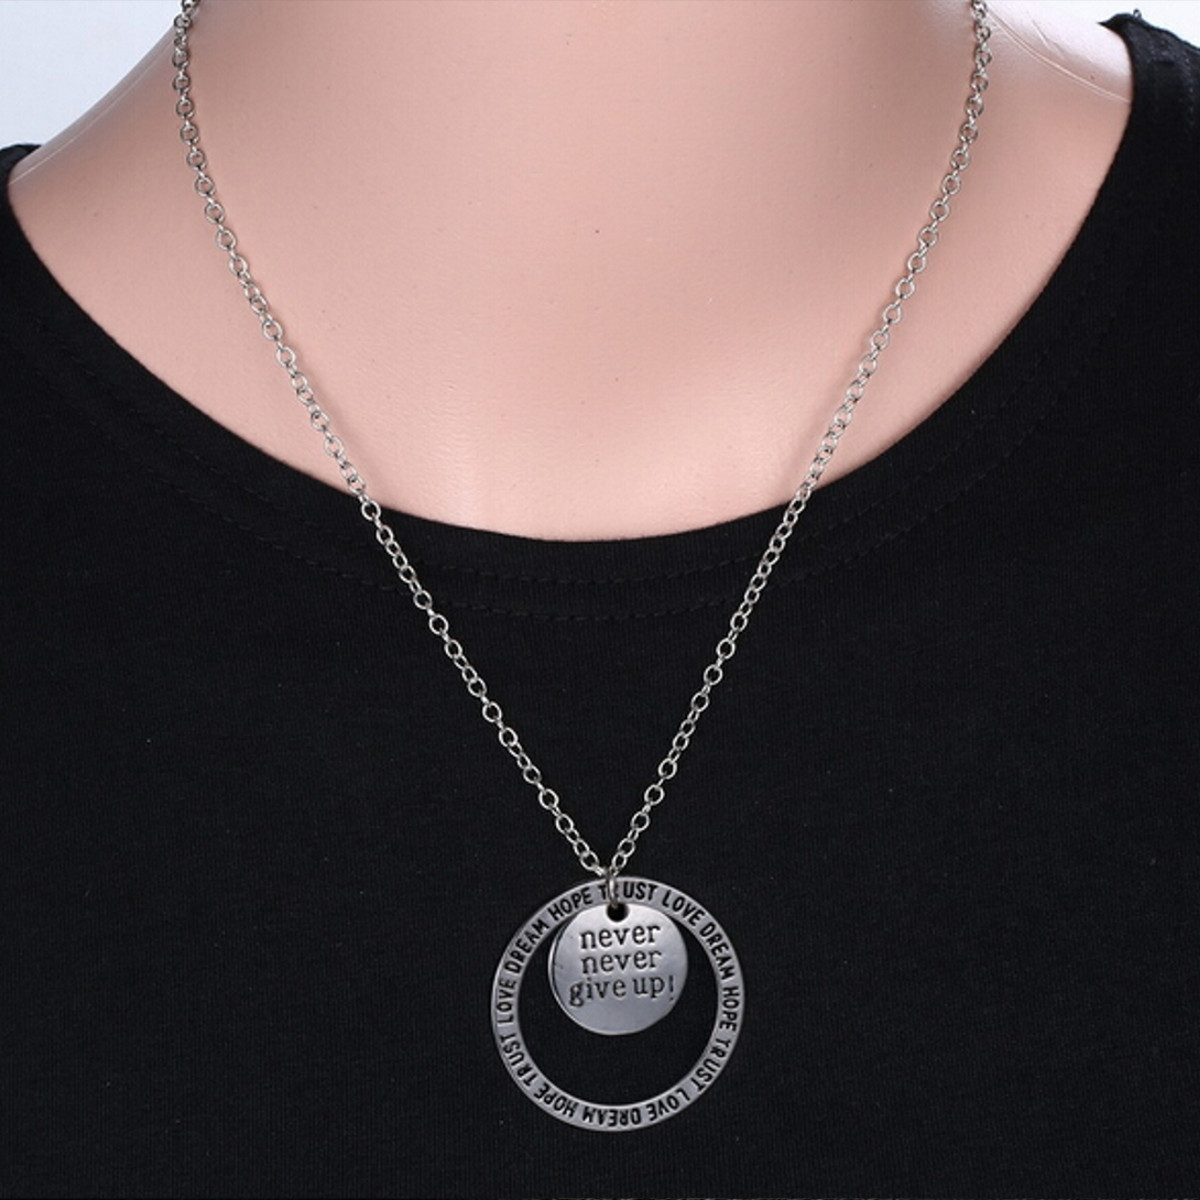 Tree Plant Animal Letter Star Round Charm Silver Necklace Chain